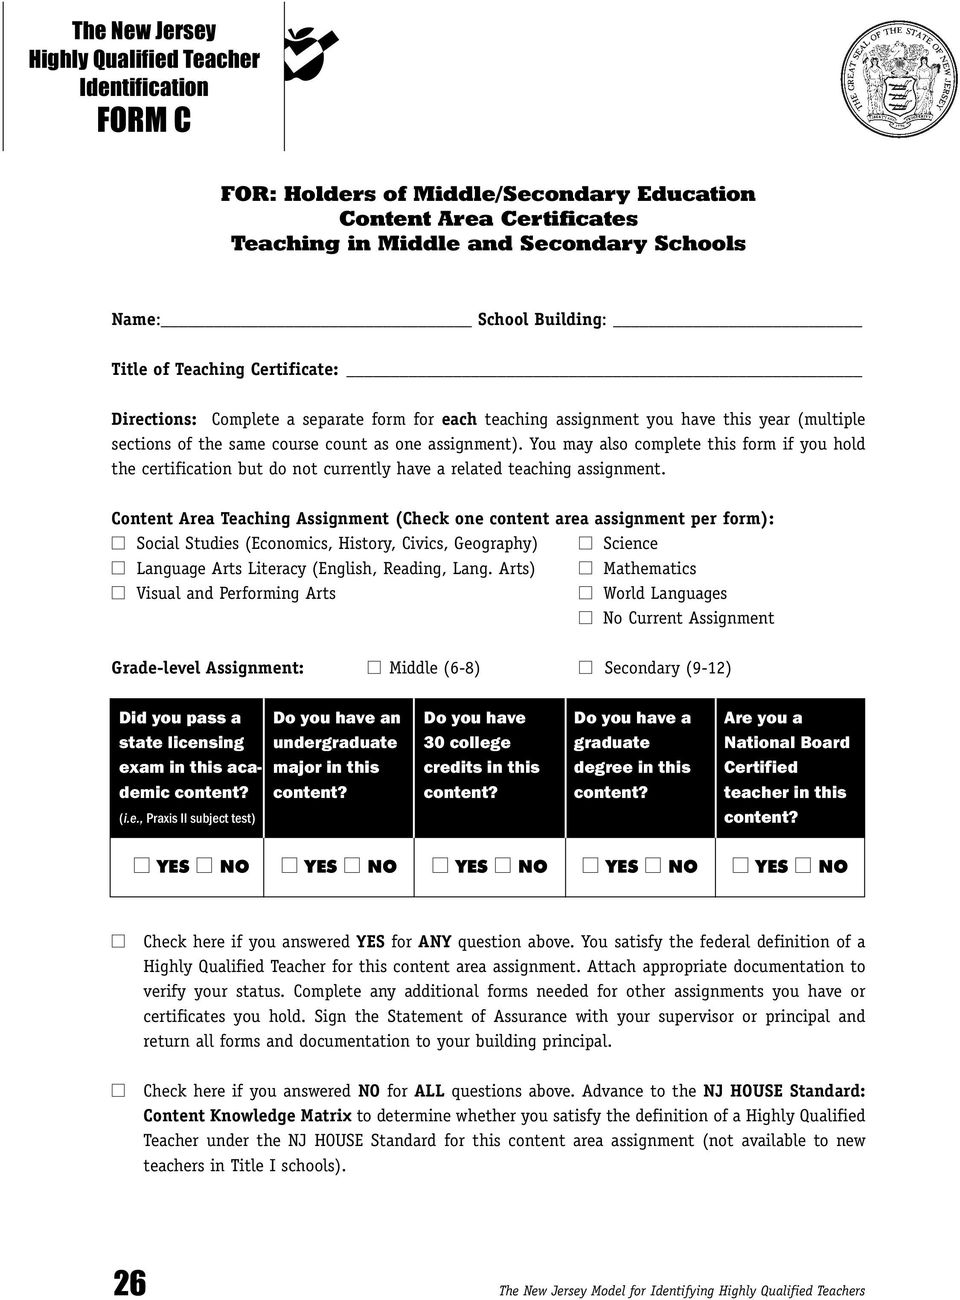 You may also complete this form if you hold the certification but do not currently have a related teaching assignment.